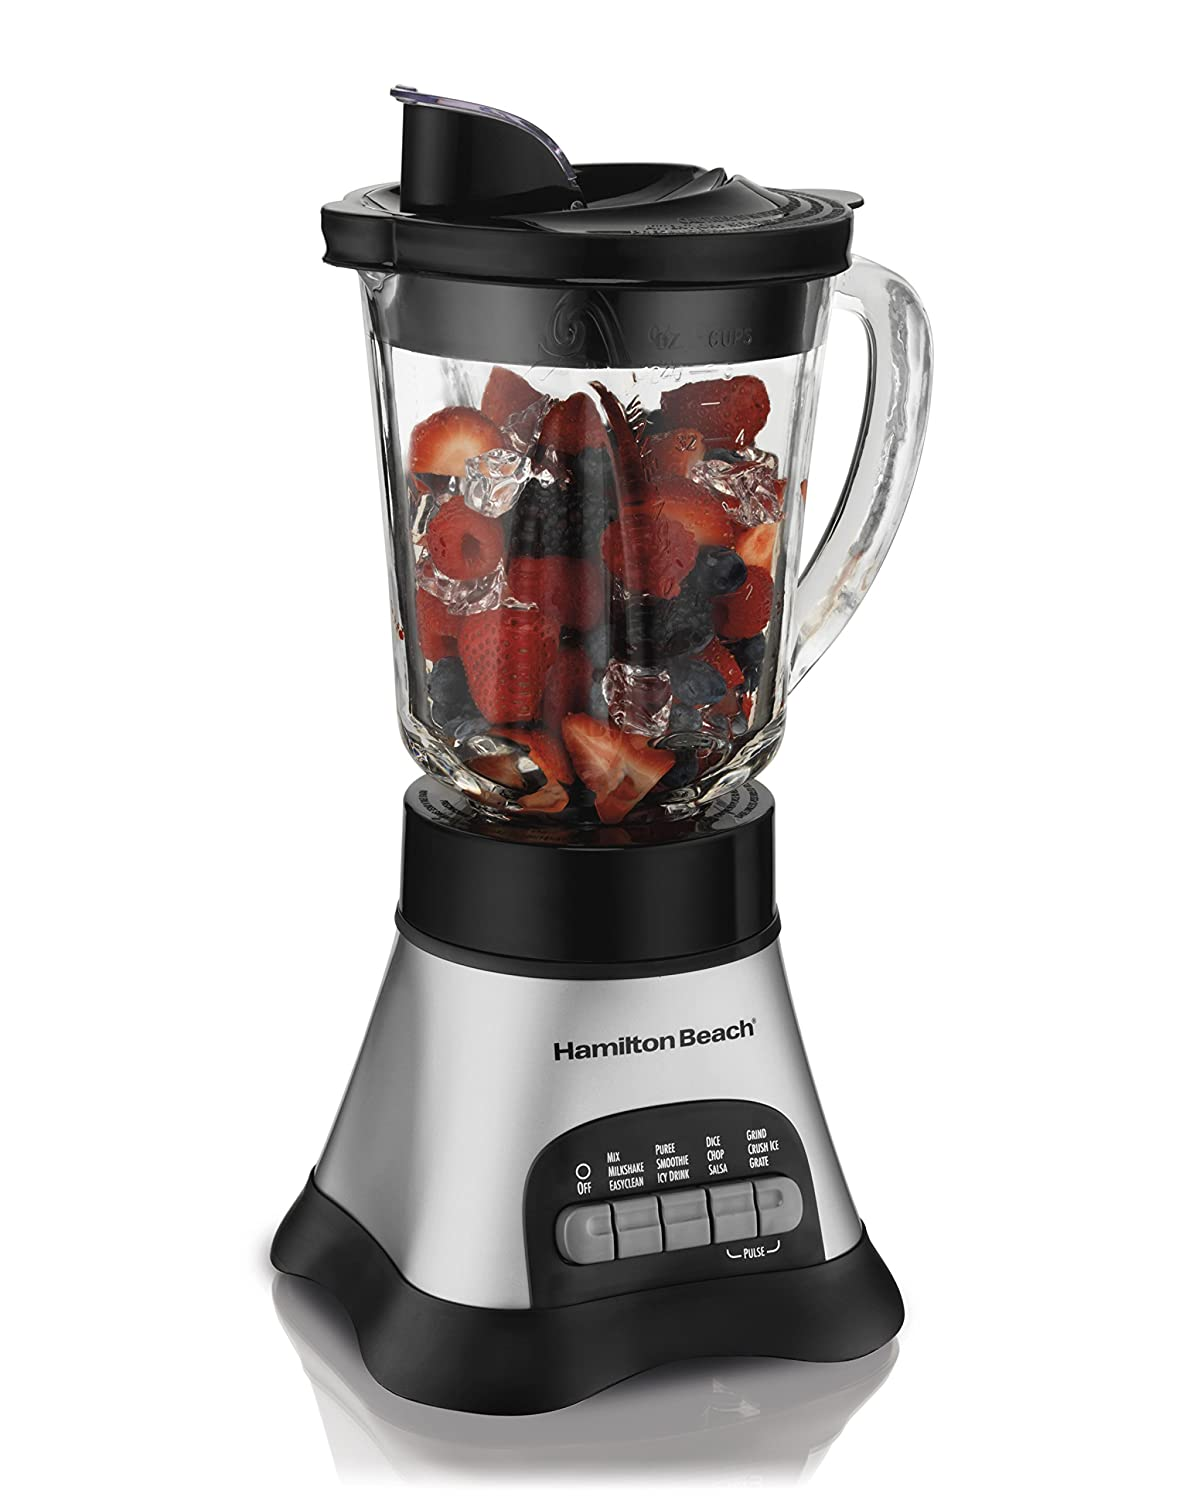 Hamilton Beach 58160 Wave Crusher Multi-Function Blender, Silver